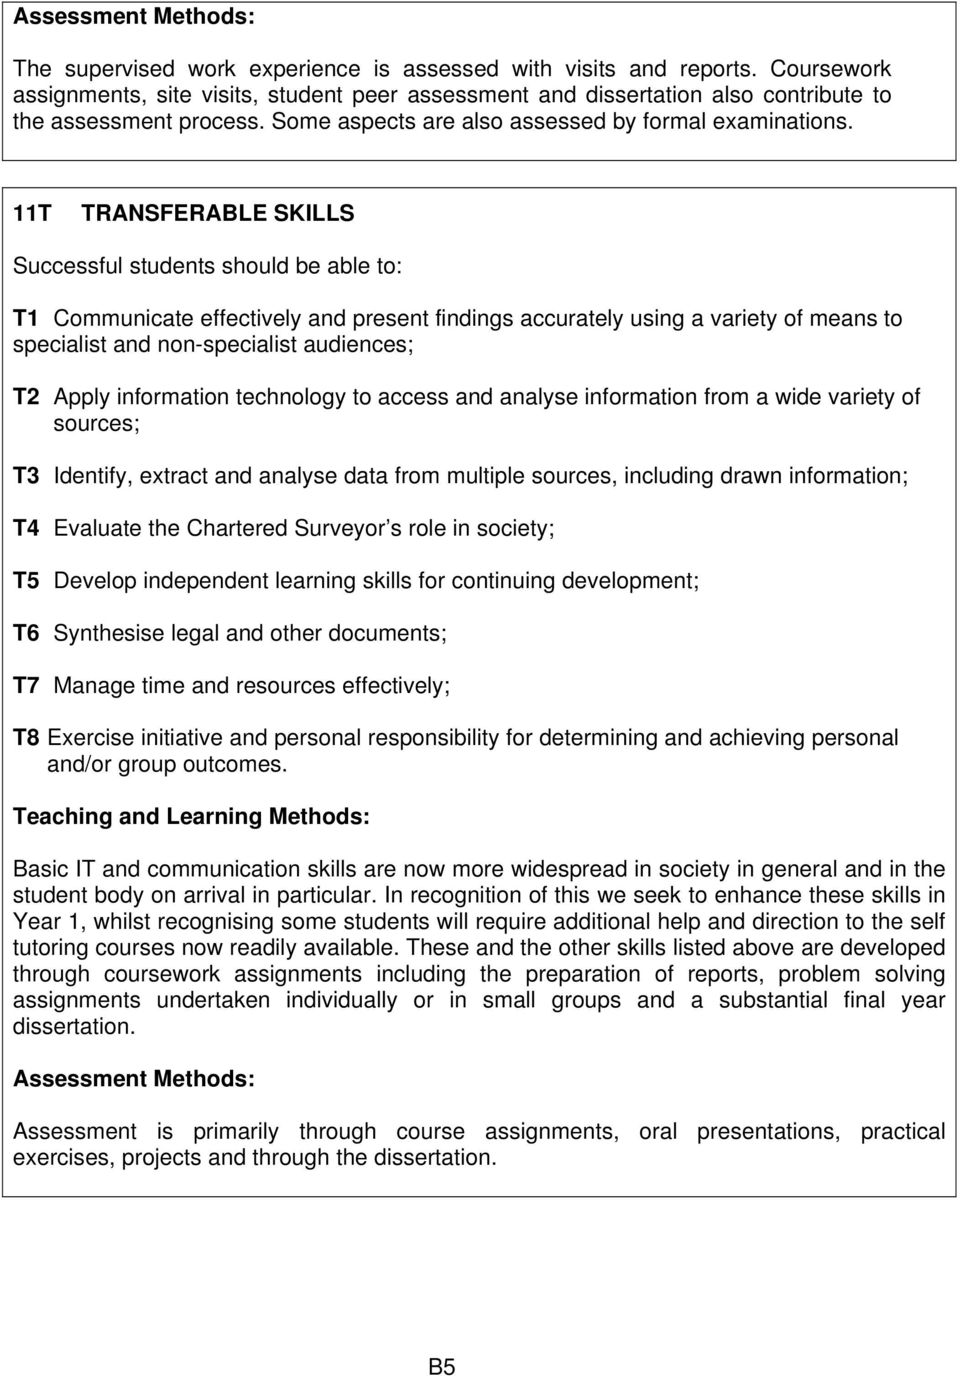 11T TRANSFERABLE SKILLS Successful students should be able to: T1 Communicate effectively and present findings accurately using a variety of means to specialist and non-specialist audiences; T2 Apply